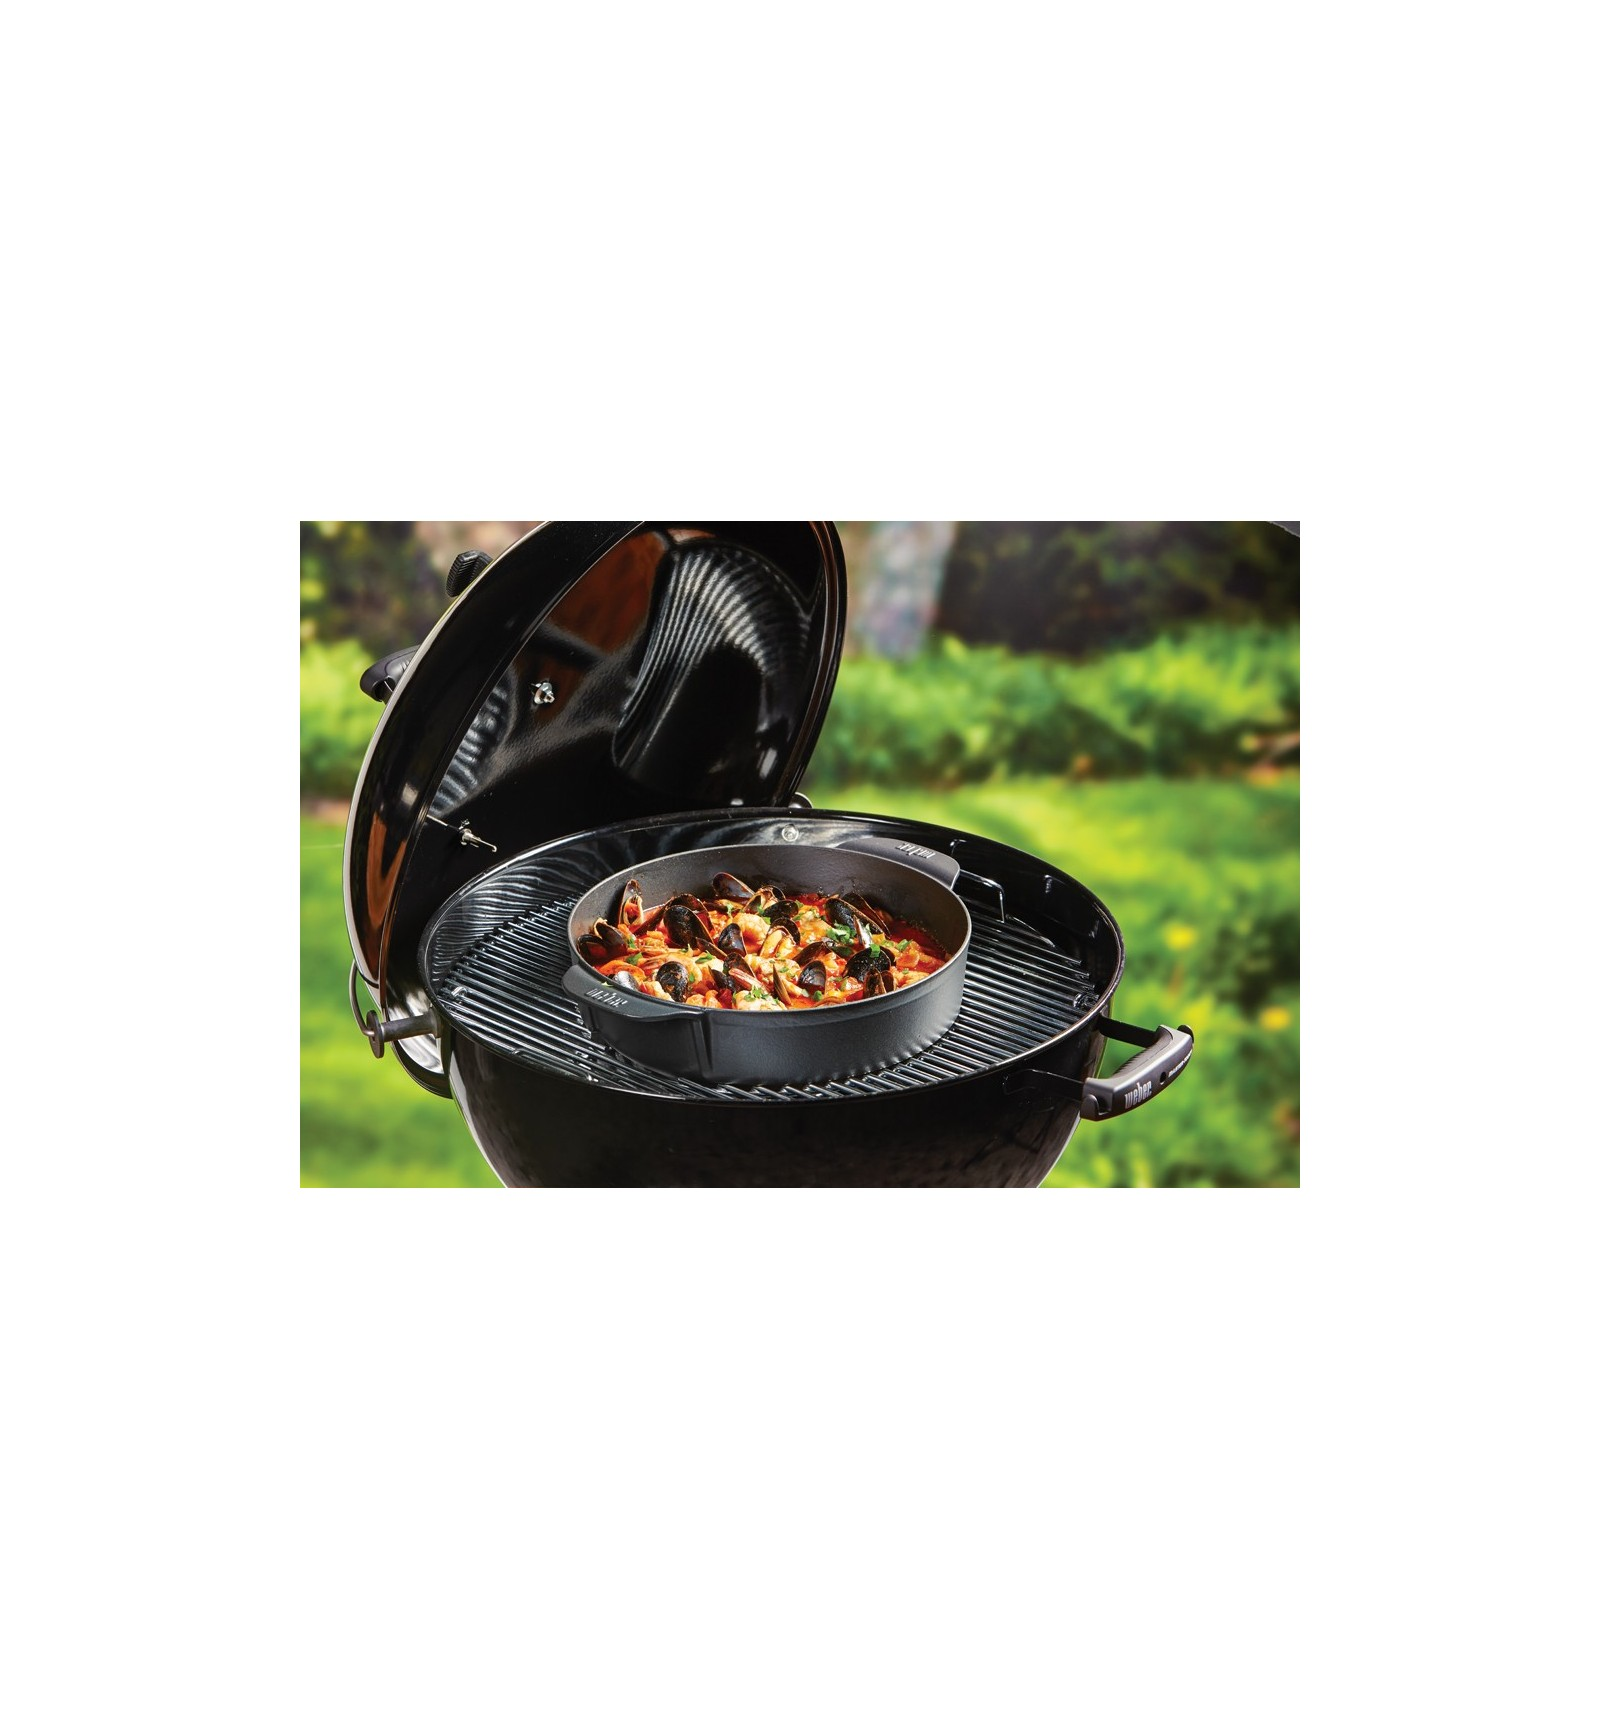 Gourmet Bbq System Cocotte Gourmet Bbq System 8842